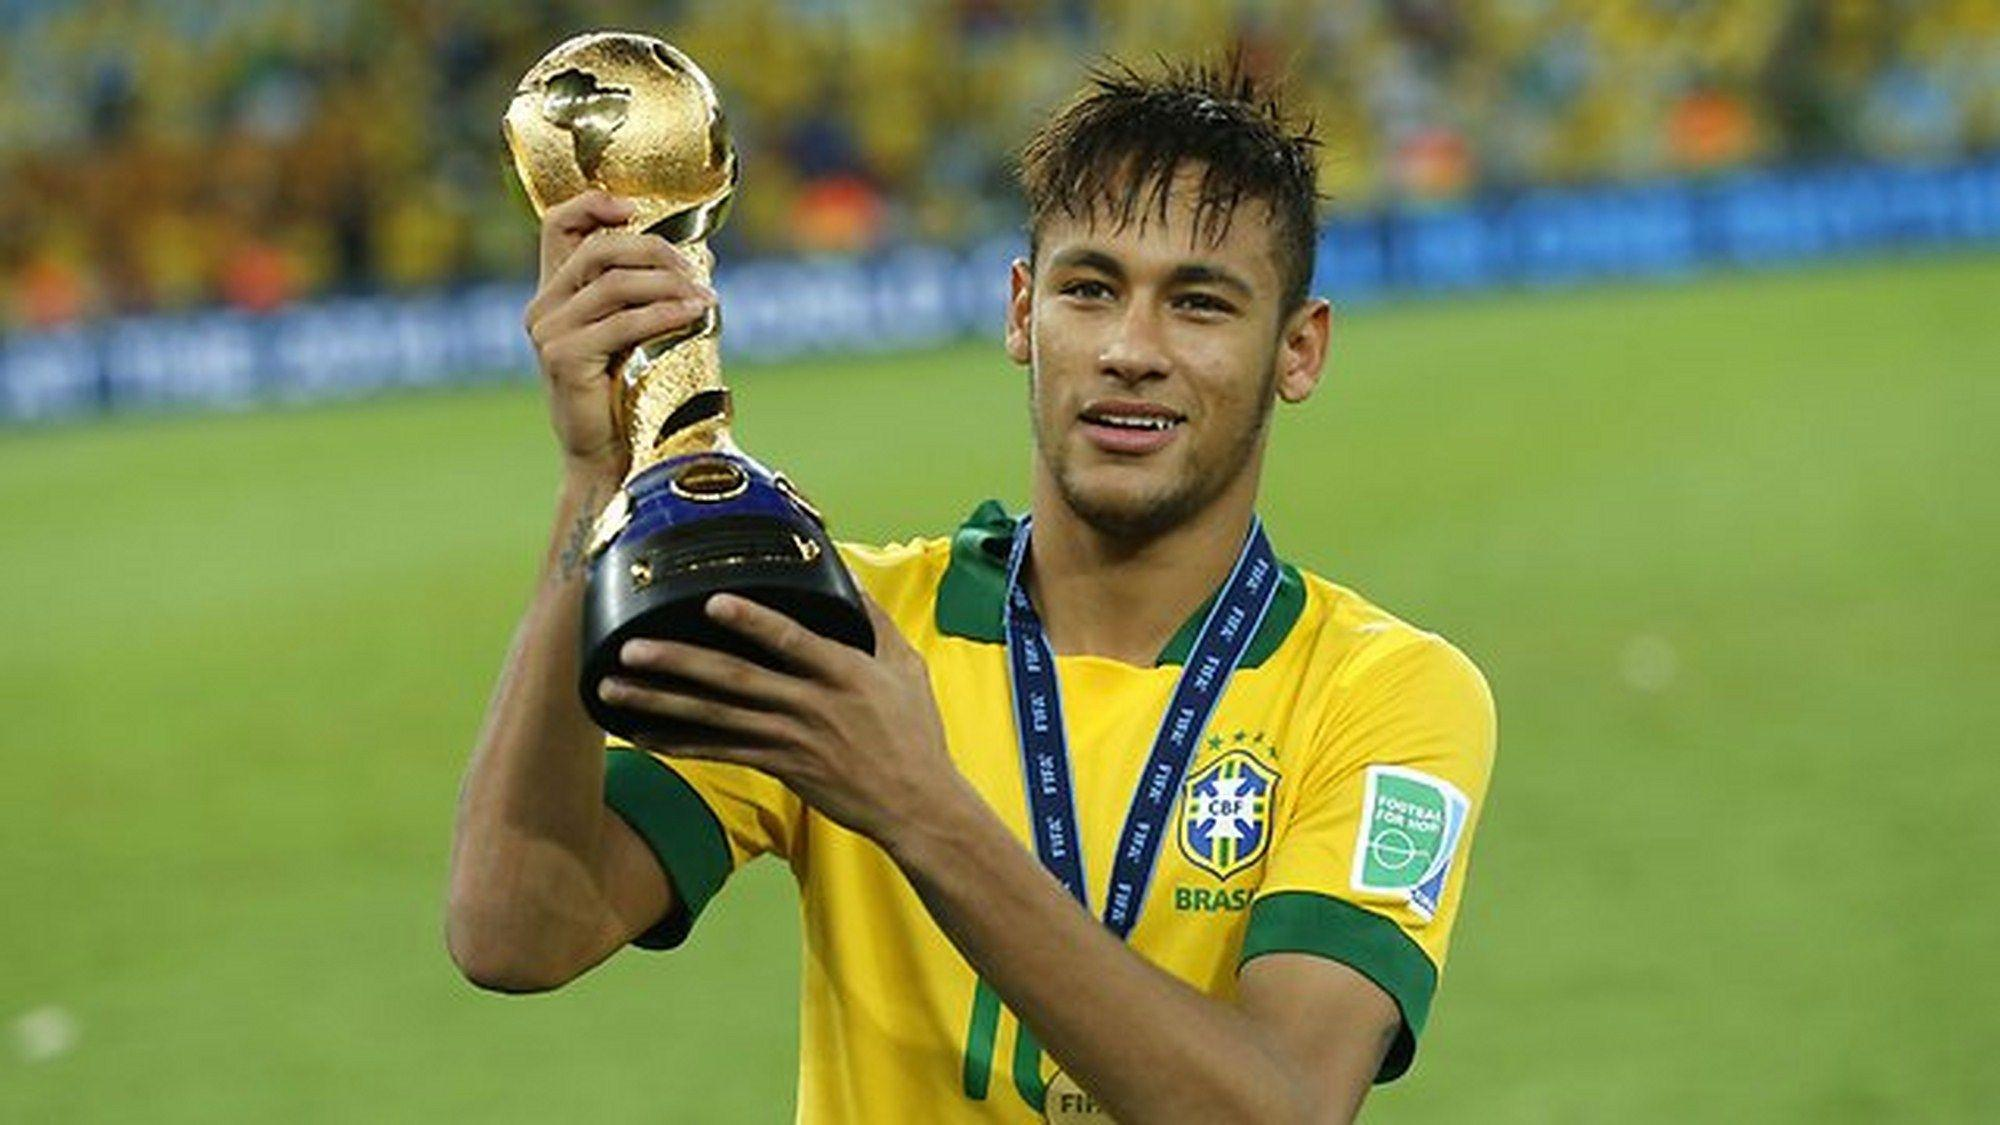 Hd Images Of Neymar